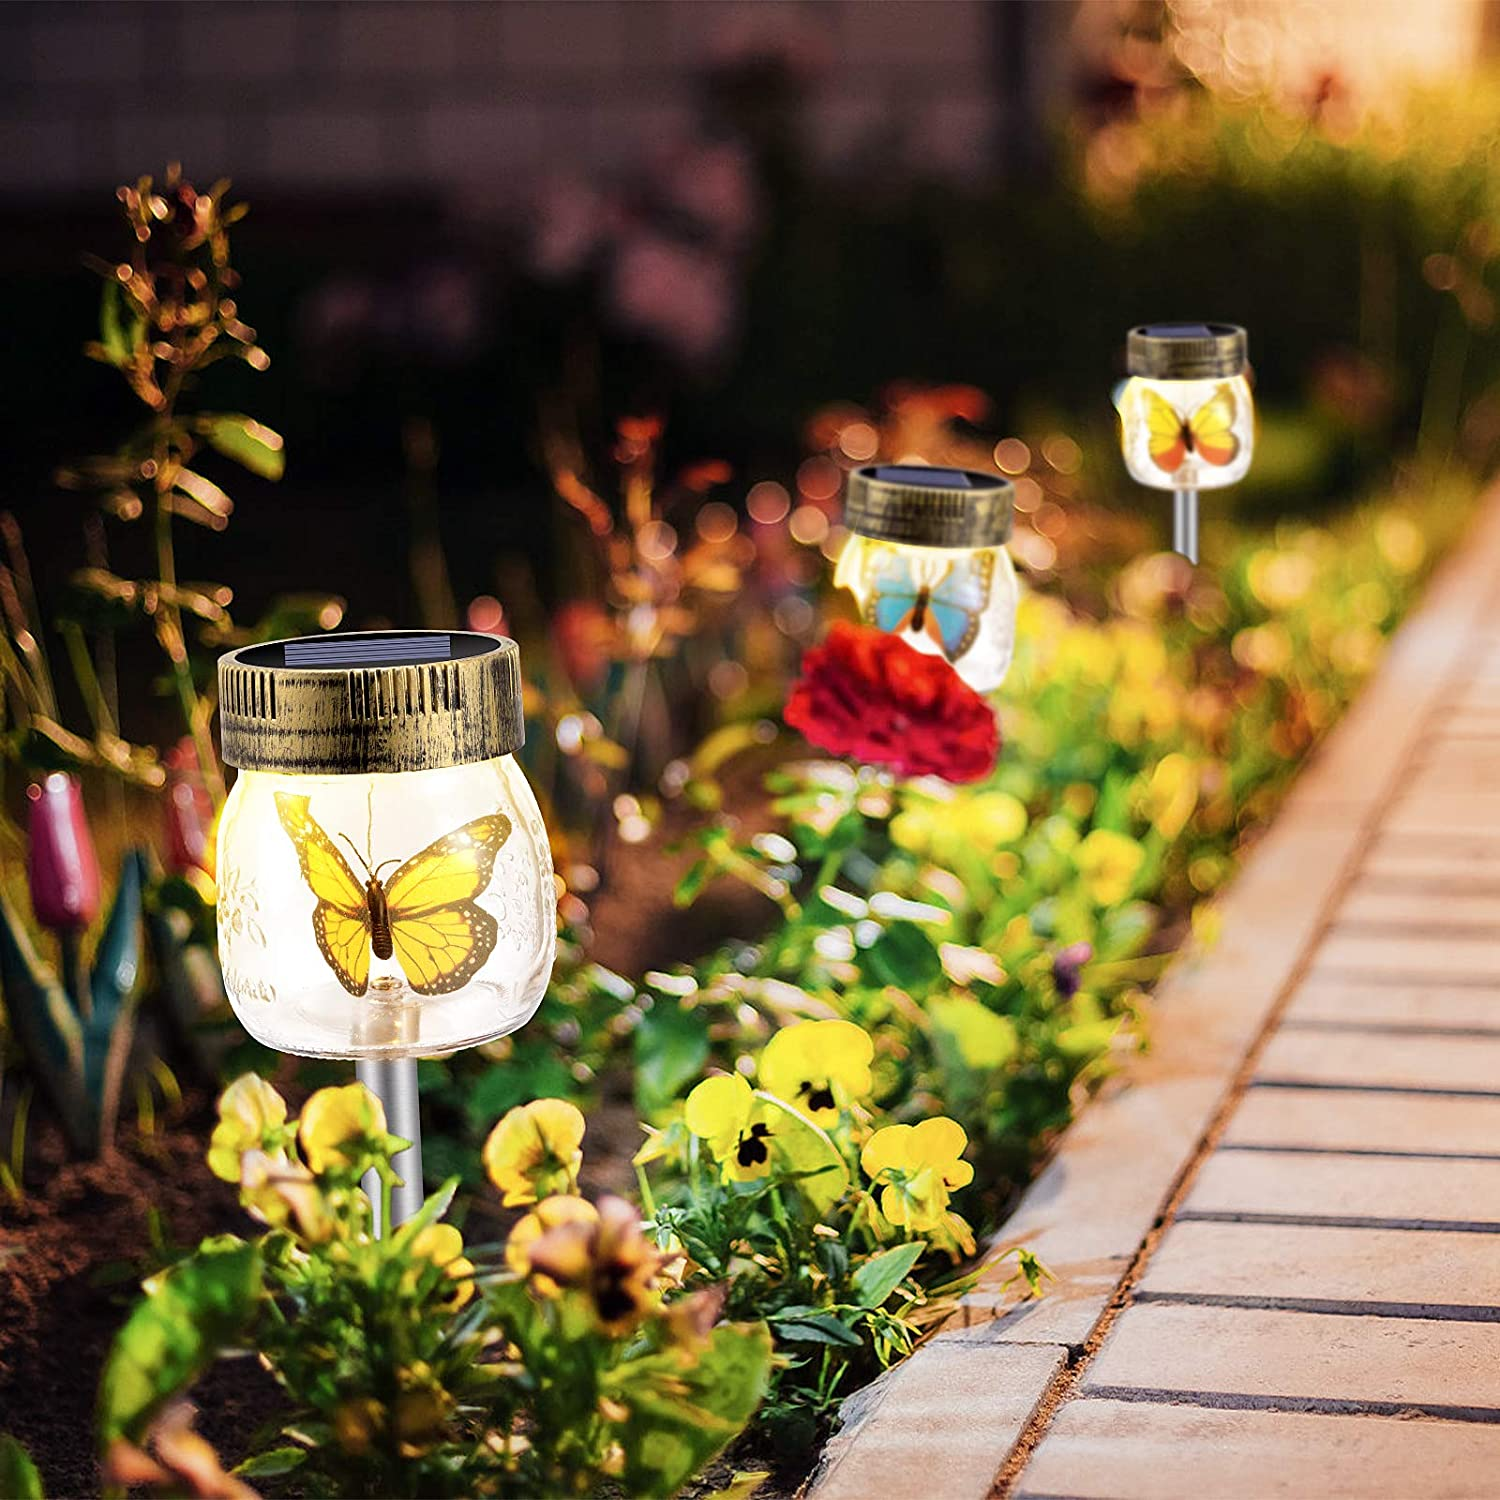 Solar Garden Lights Outdoor Decorative - 3 Pack Decorative Butterfly Glass Jar Lights for Pathway, Lawn, Yard (2021 Newest)